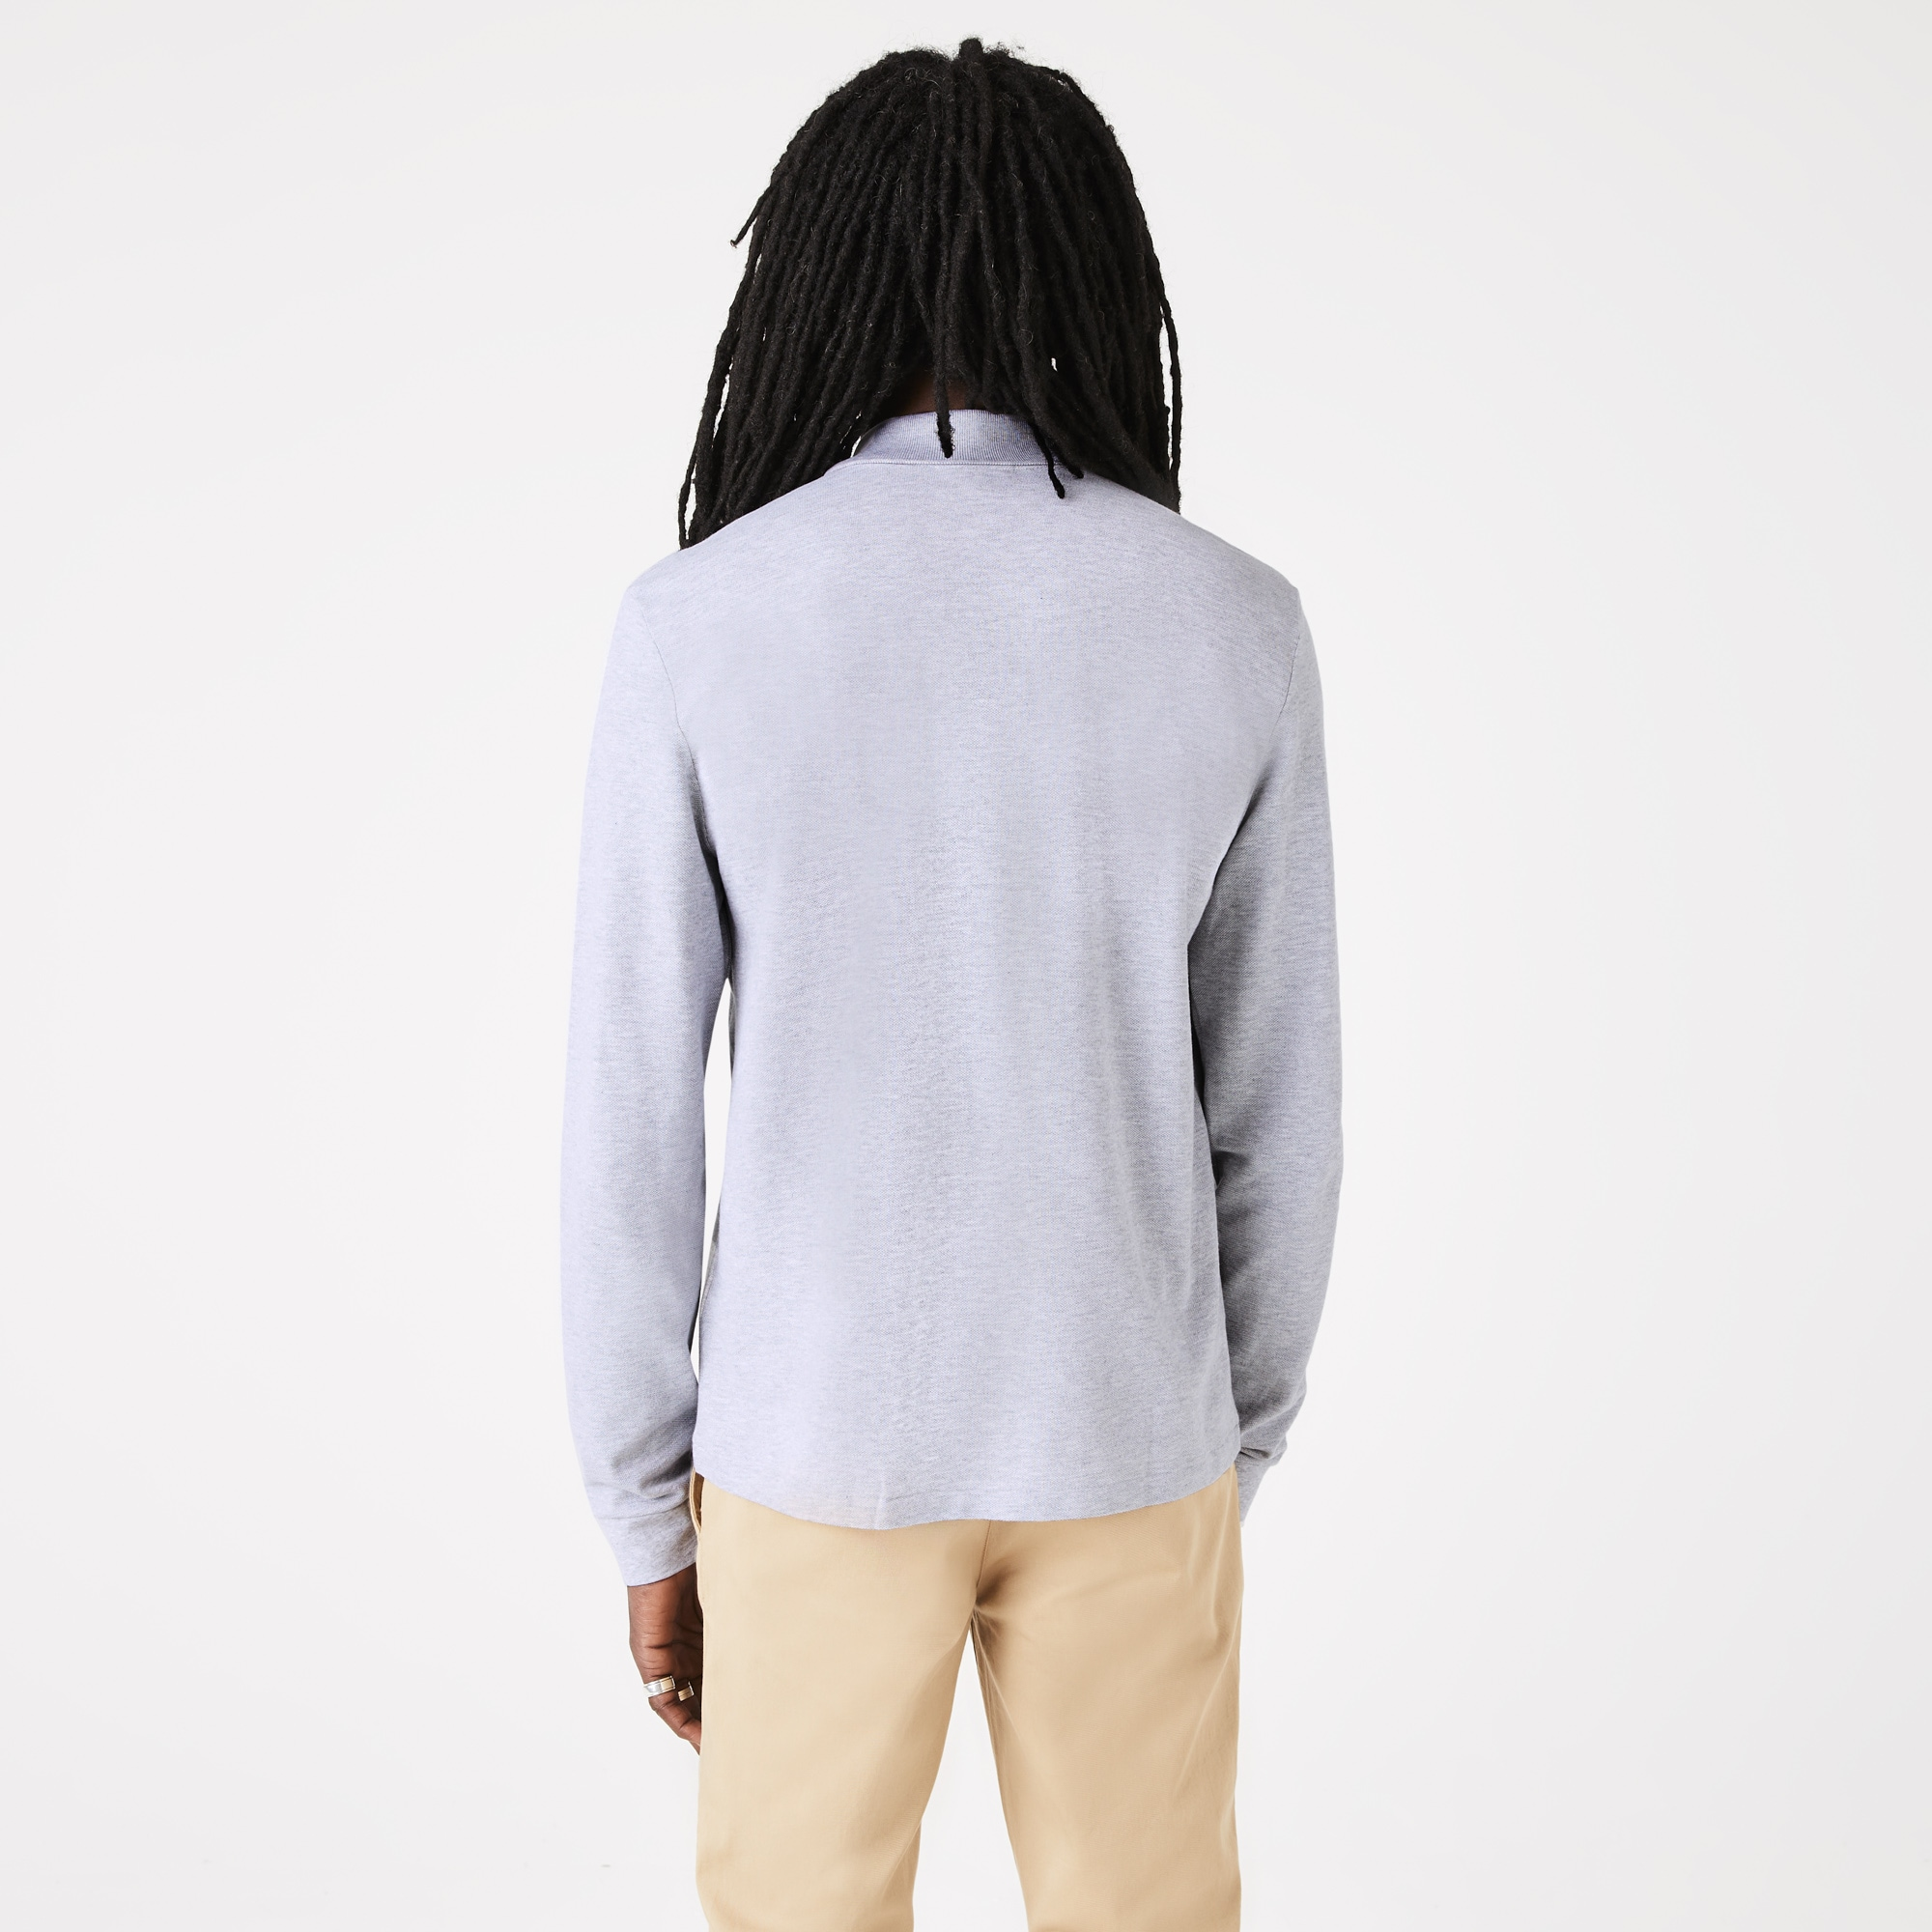 bbea18f6970911 Lacoste classic fit long-sleeve Polo Shirt in marl petit piqué